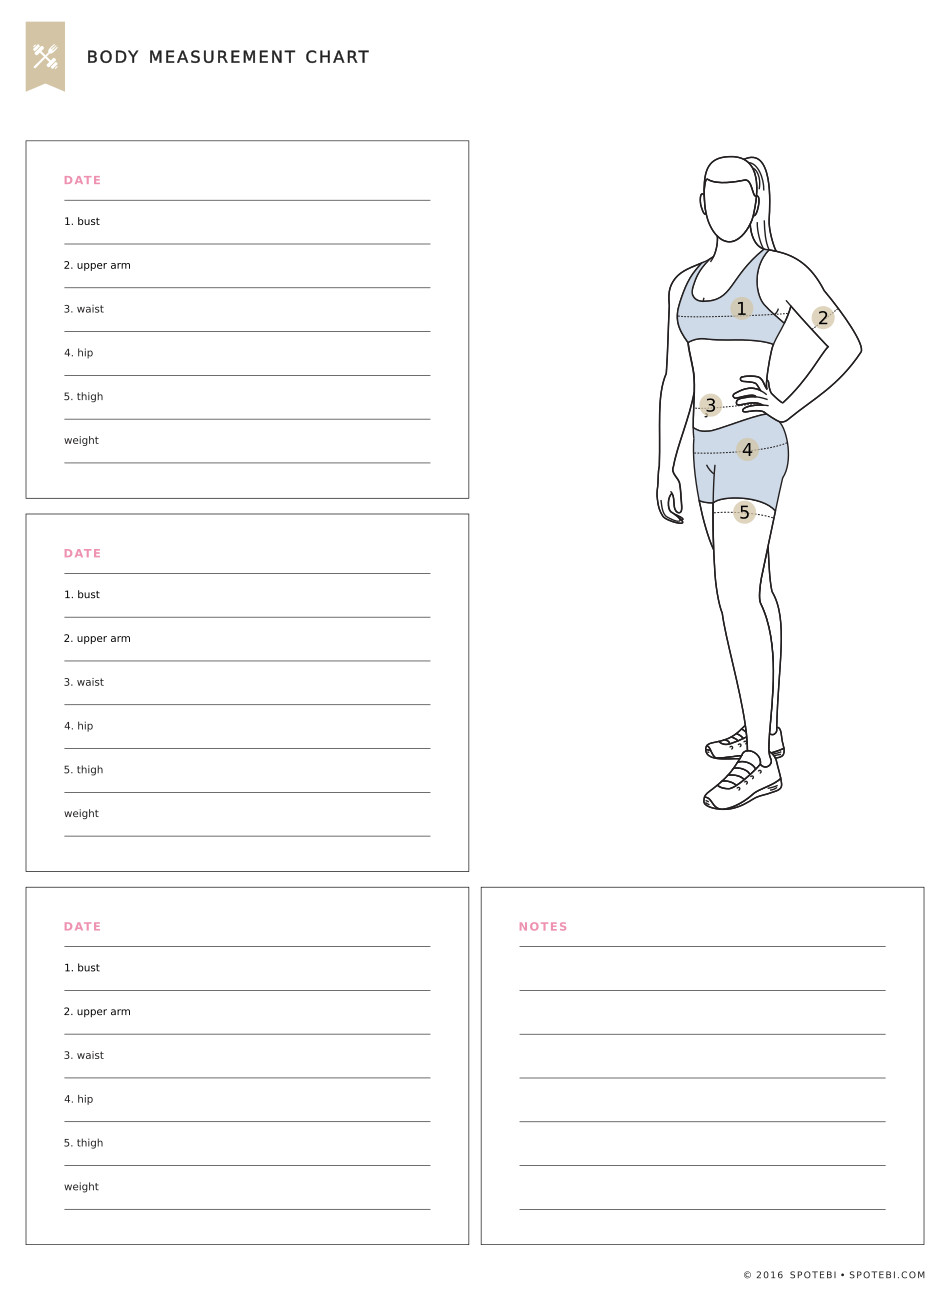 Print our free body measurement chart and measure each body part every ...